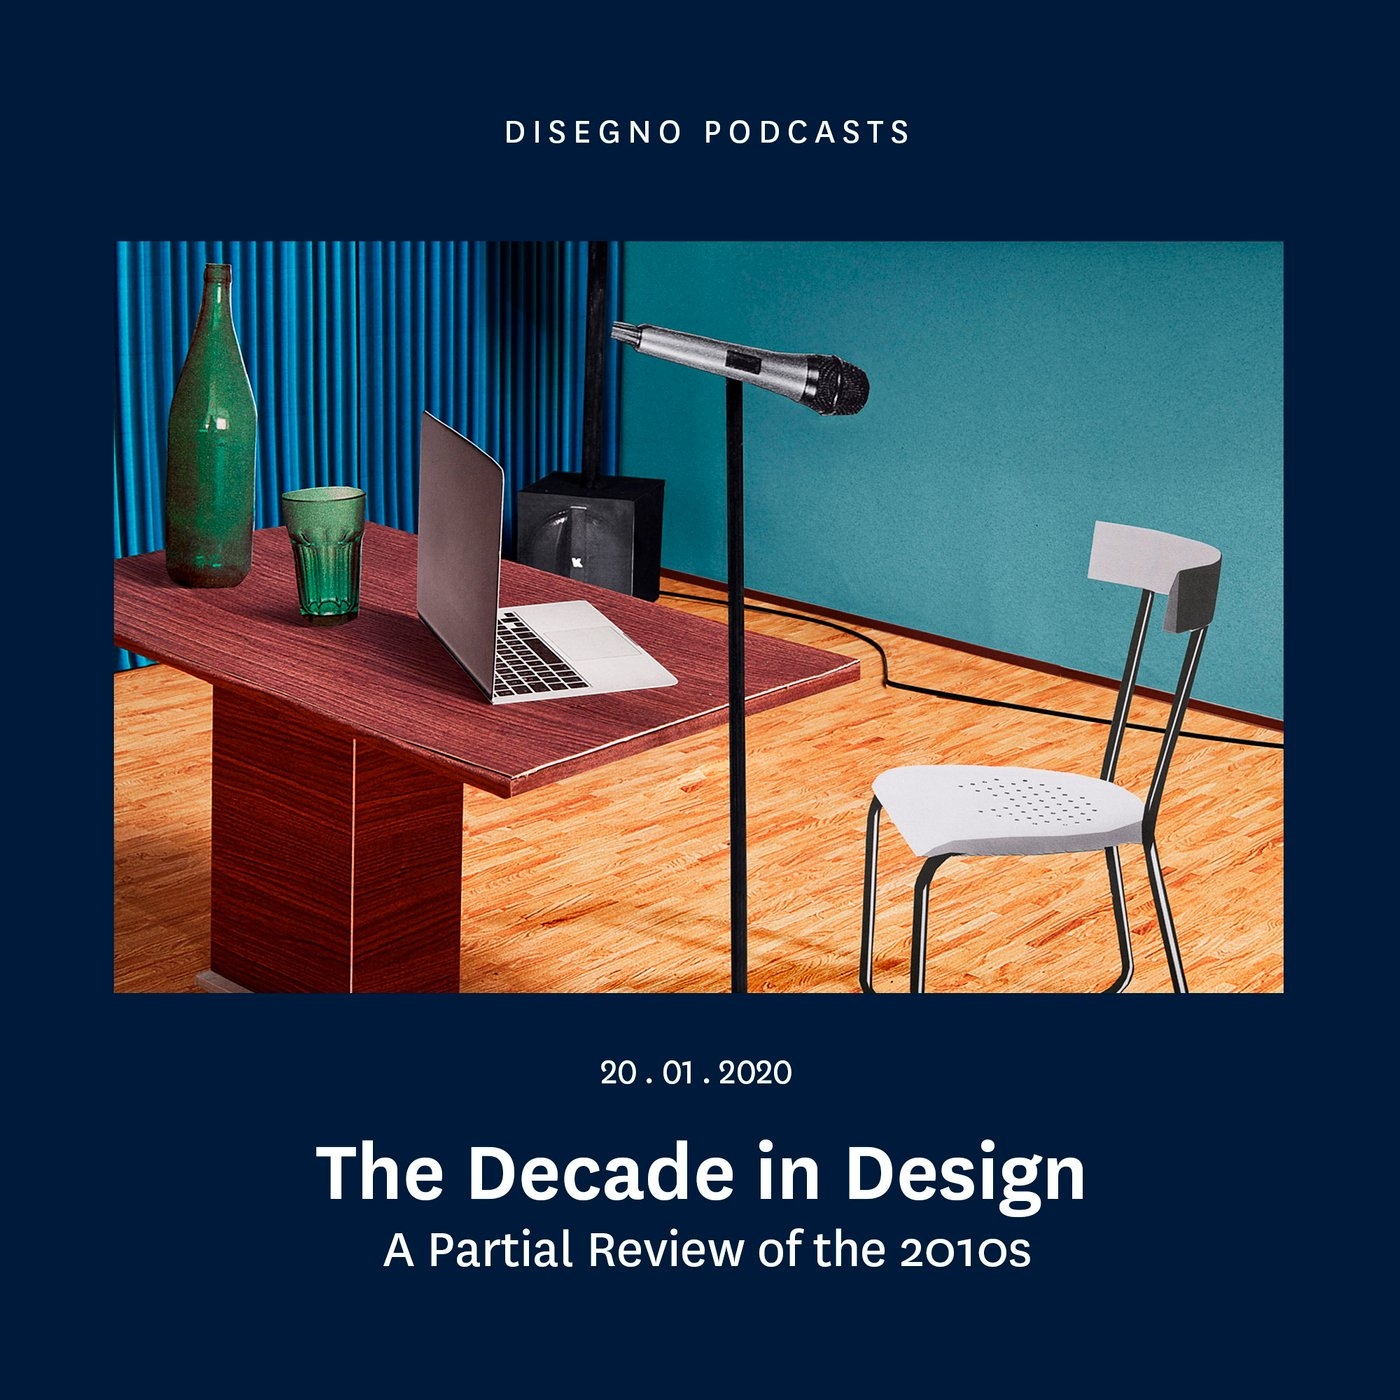 The Decade in Design: A Partial Review of the 2010s